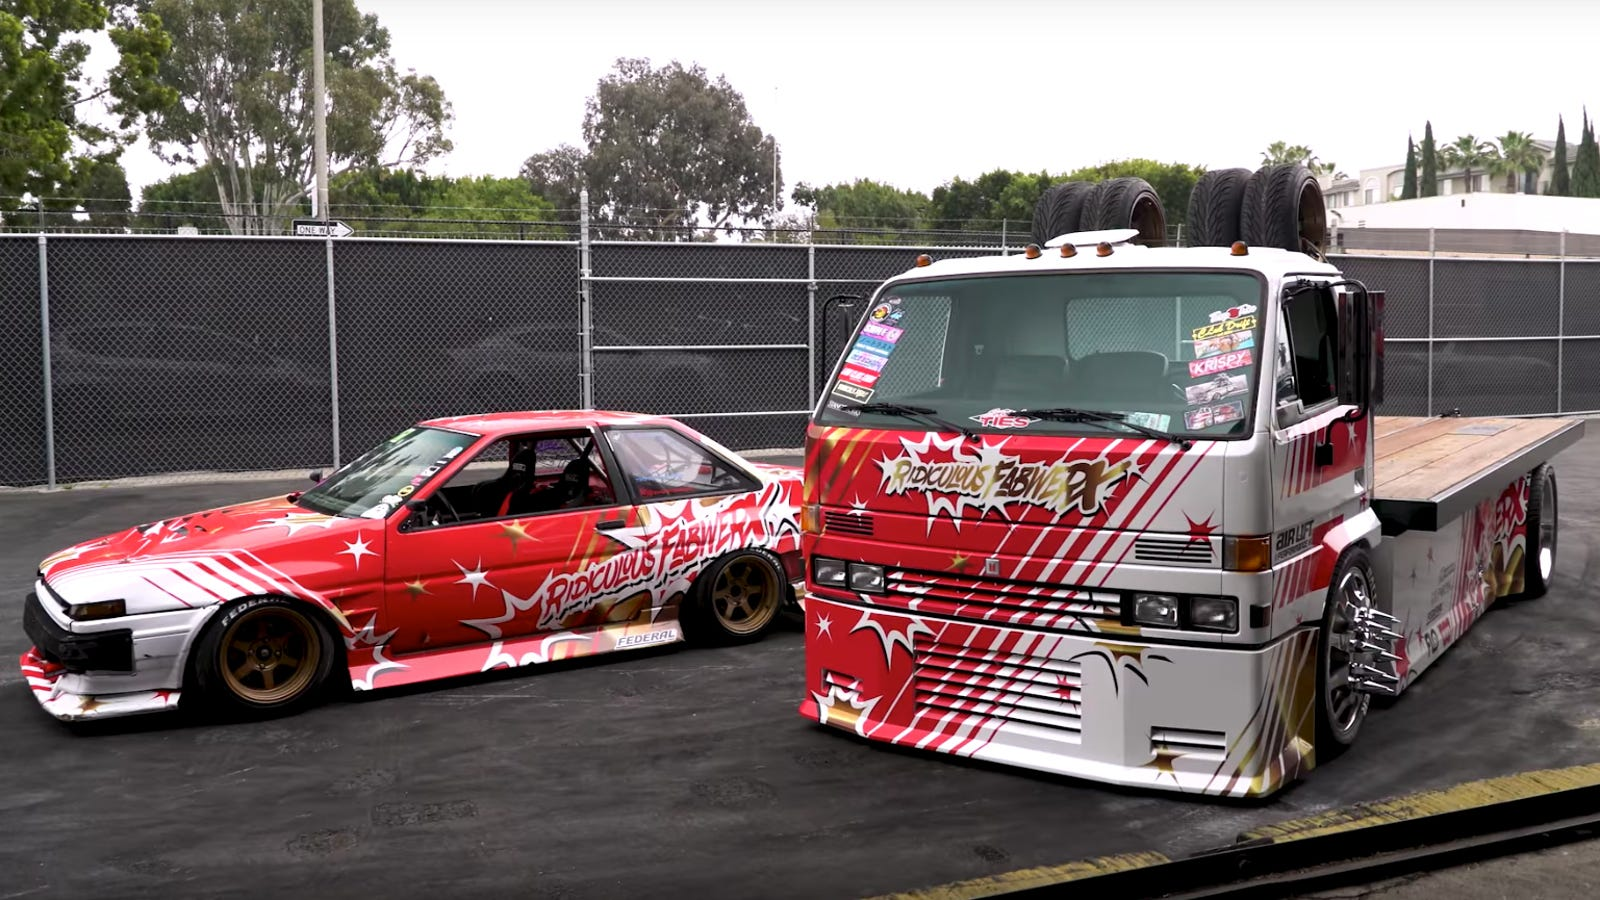 This Ae86 Toyota Corolla Comes With A Matching Custom Car Hauler Hotwheels Ae 86 Red